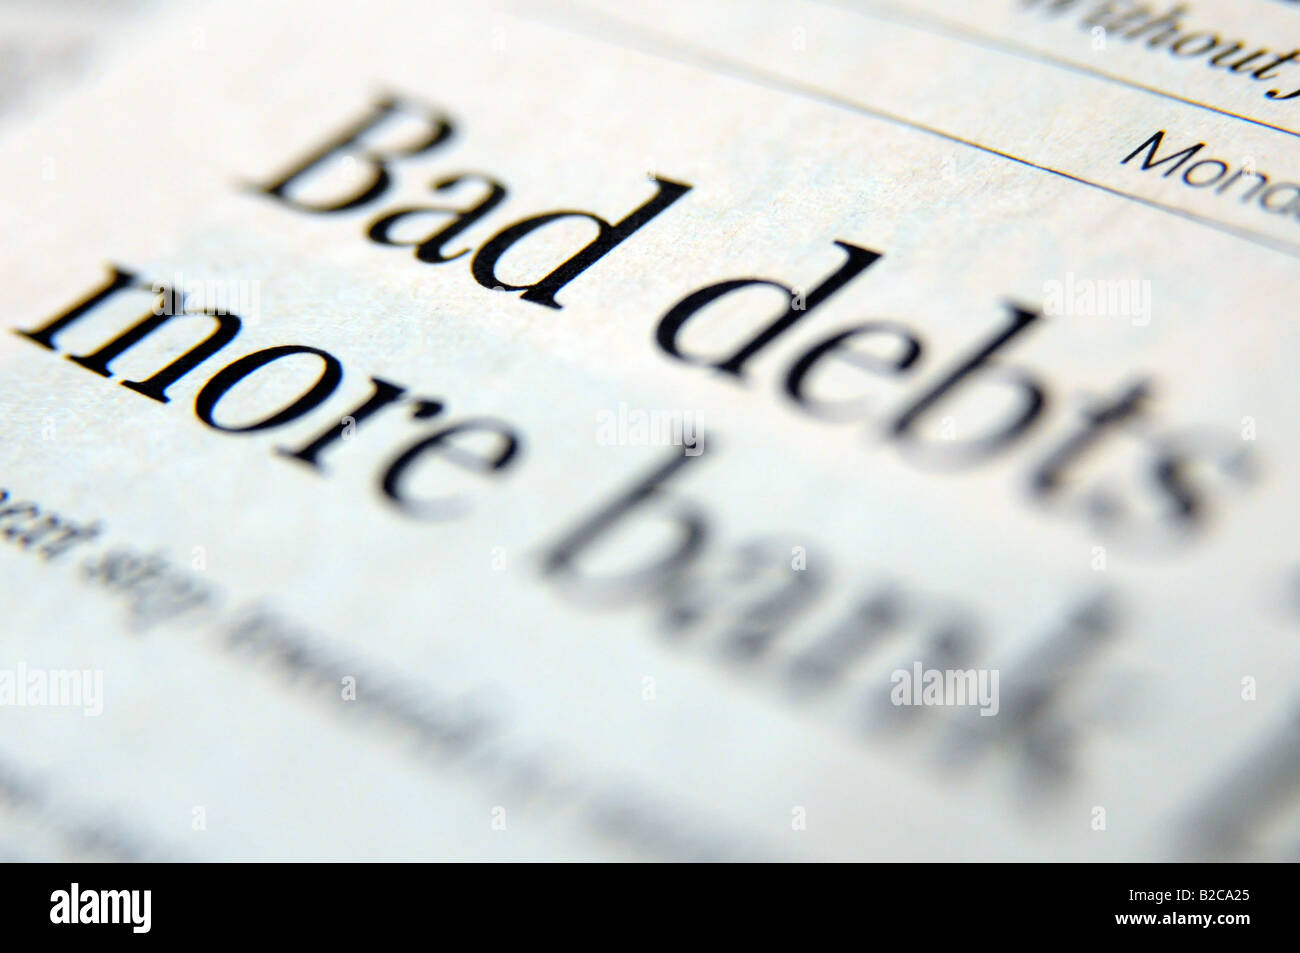 Photograph of newspaper headline about the credit crunch and economic downturn and recession. - Stock Image